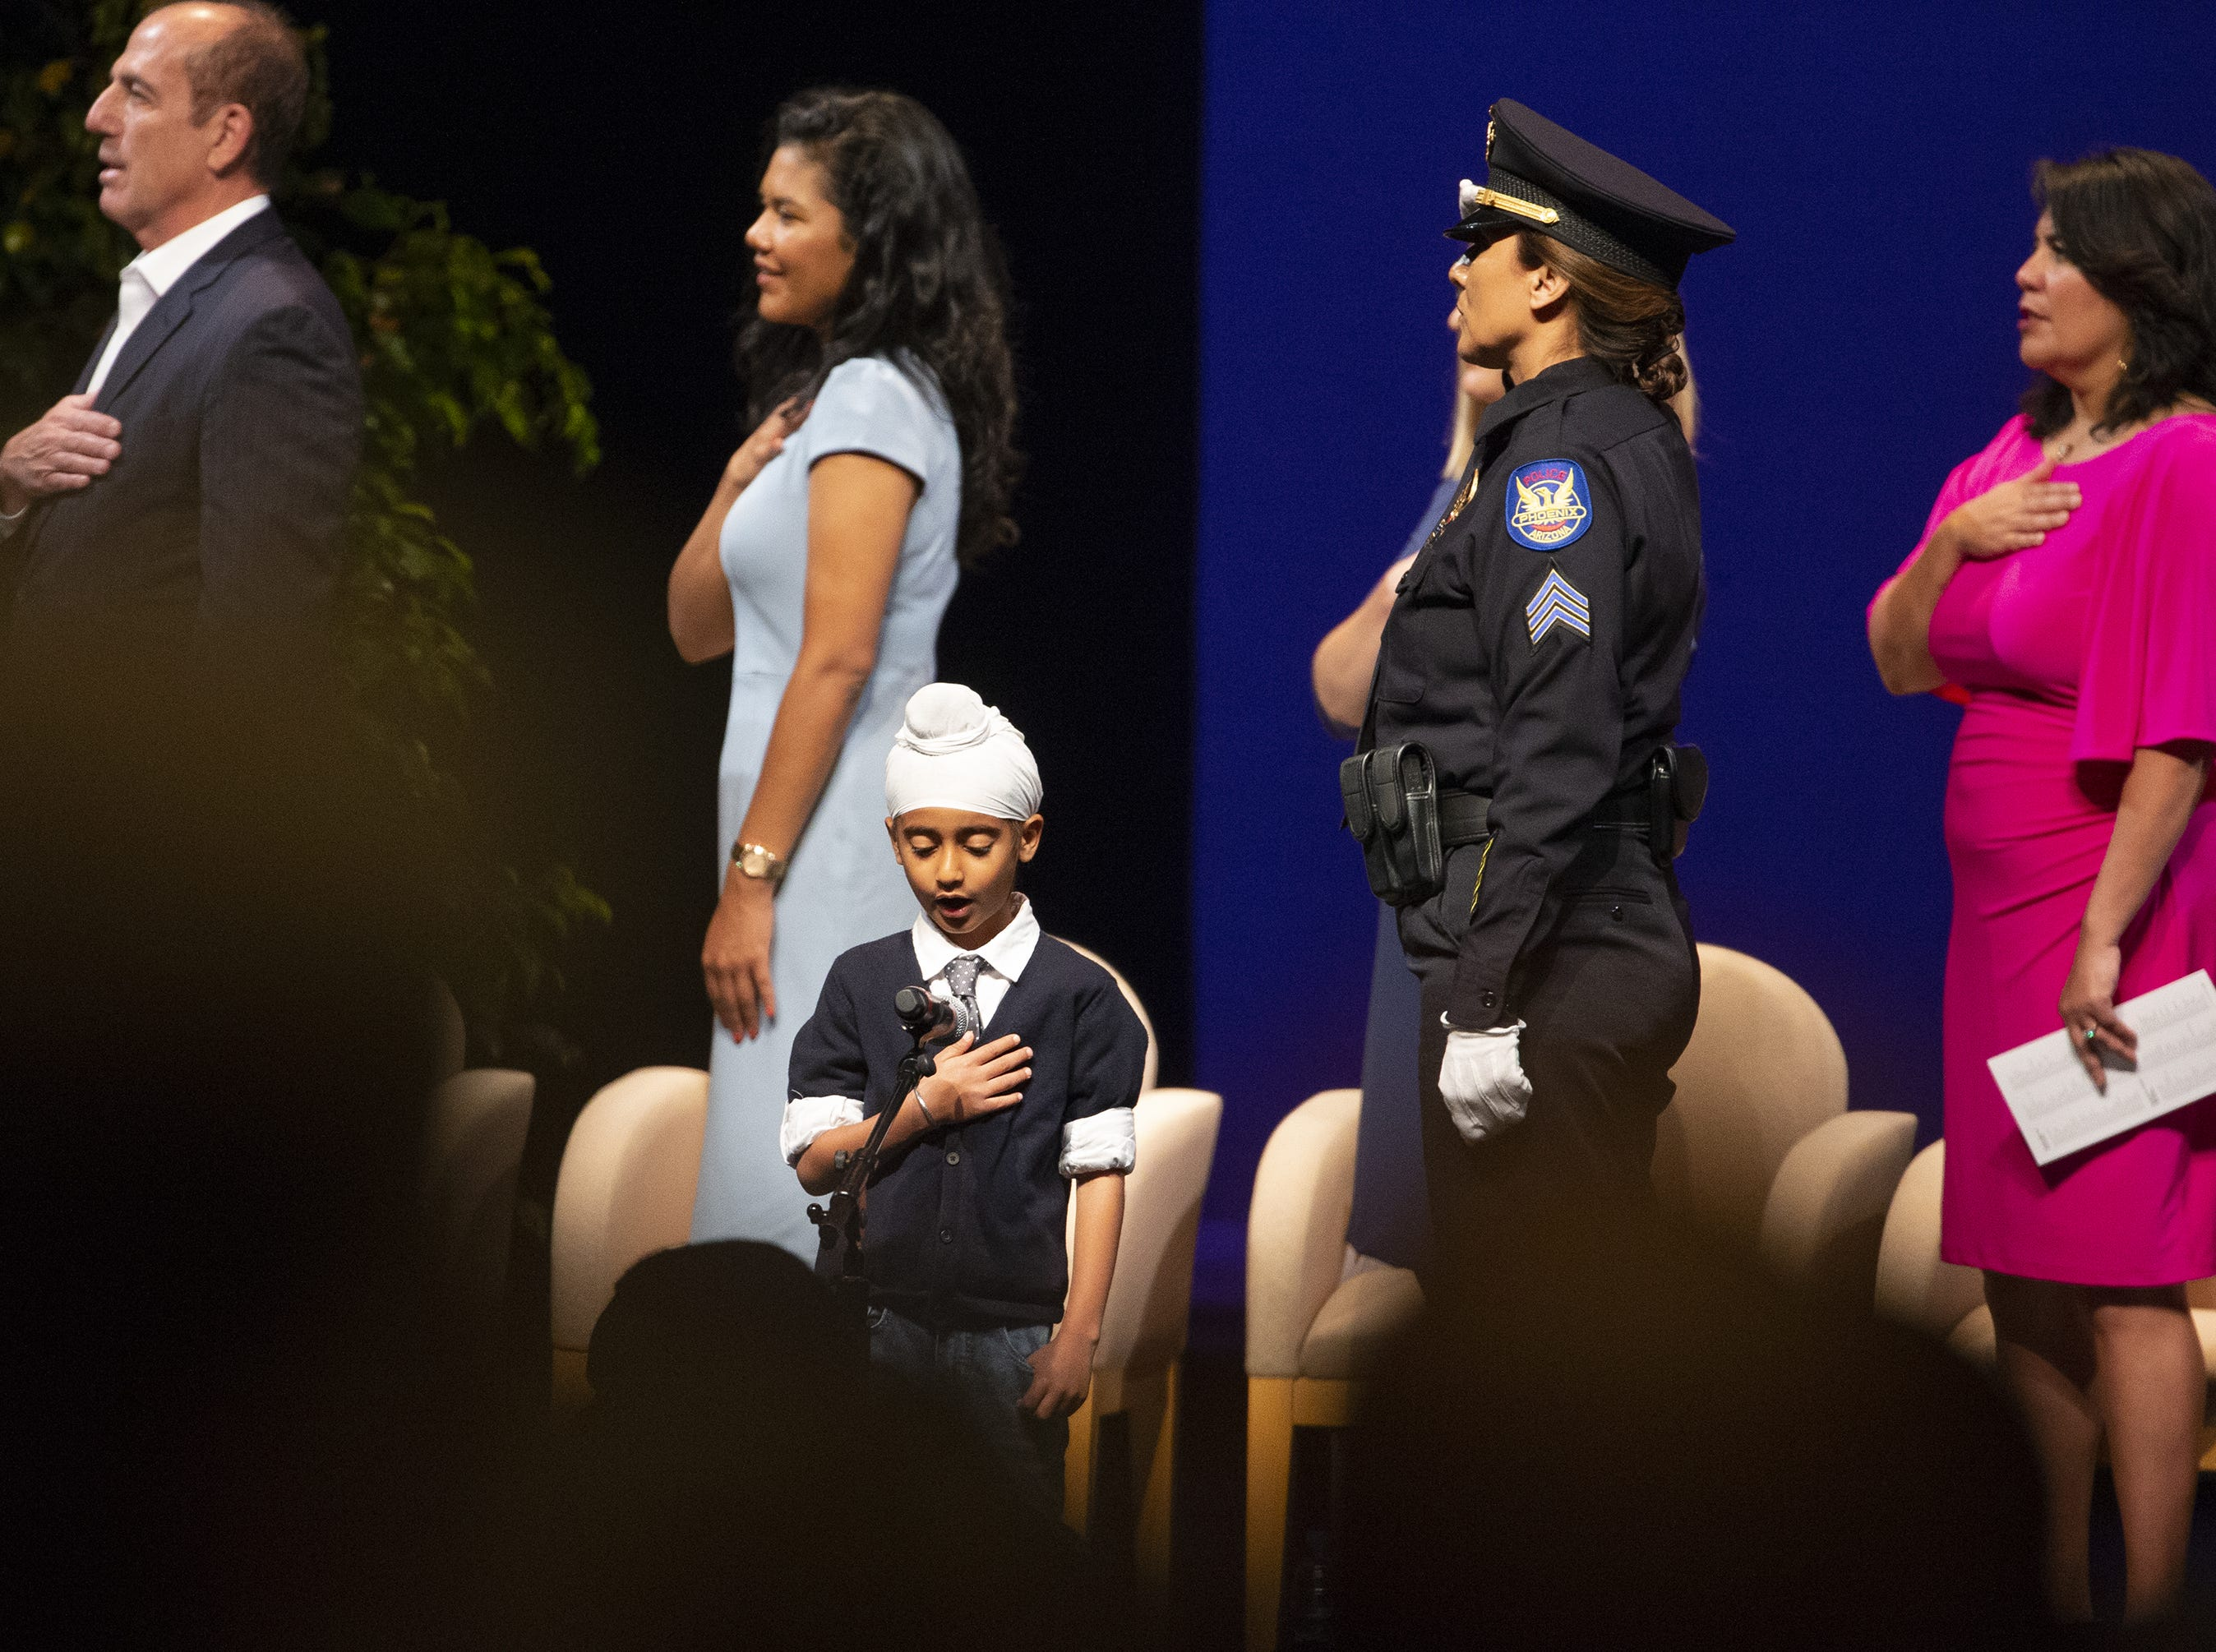 Anaik Singh Sachdev says the Pledge of Allegiance during Kate Gallego's inauguration ceremony as the new mayor of Phoenix on March 21 at the Orpheum Theatre in Phoenix, Ariz.